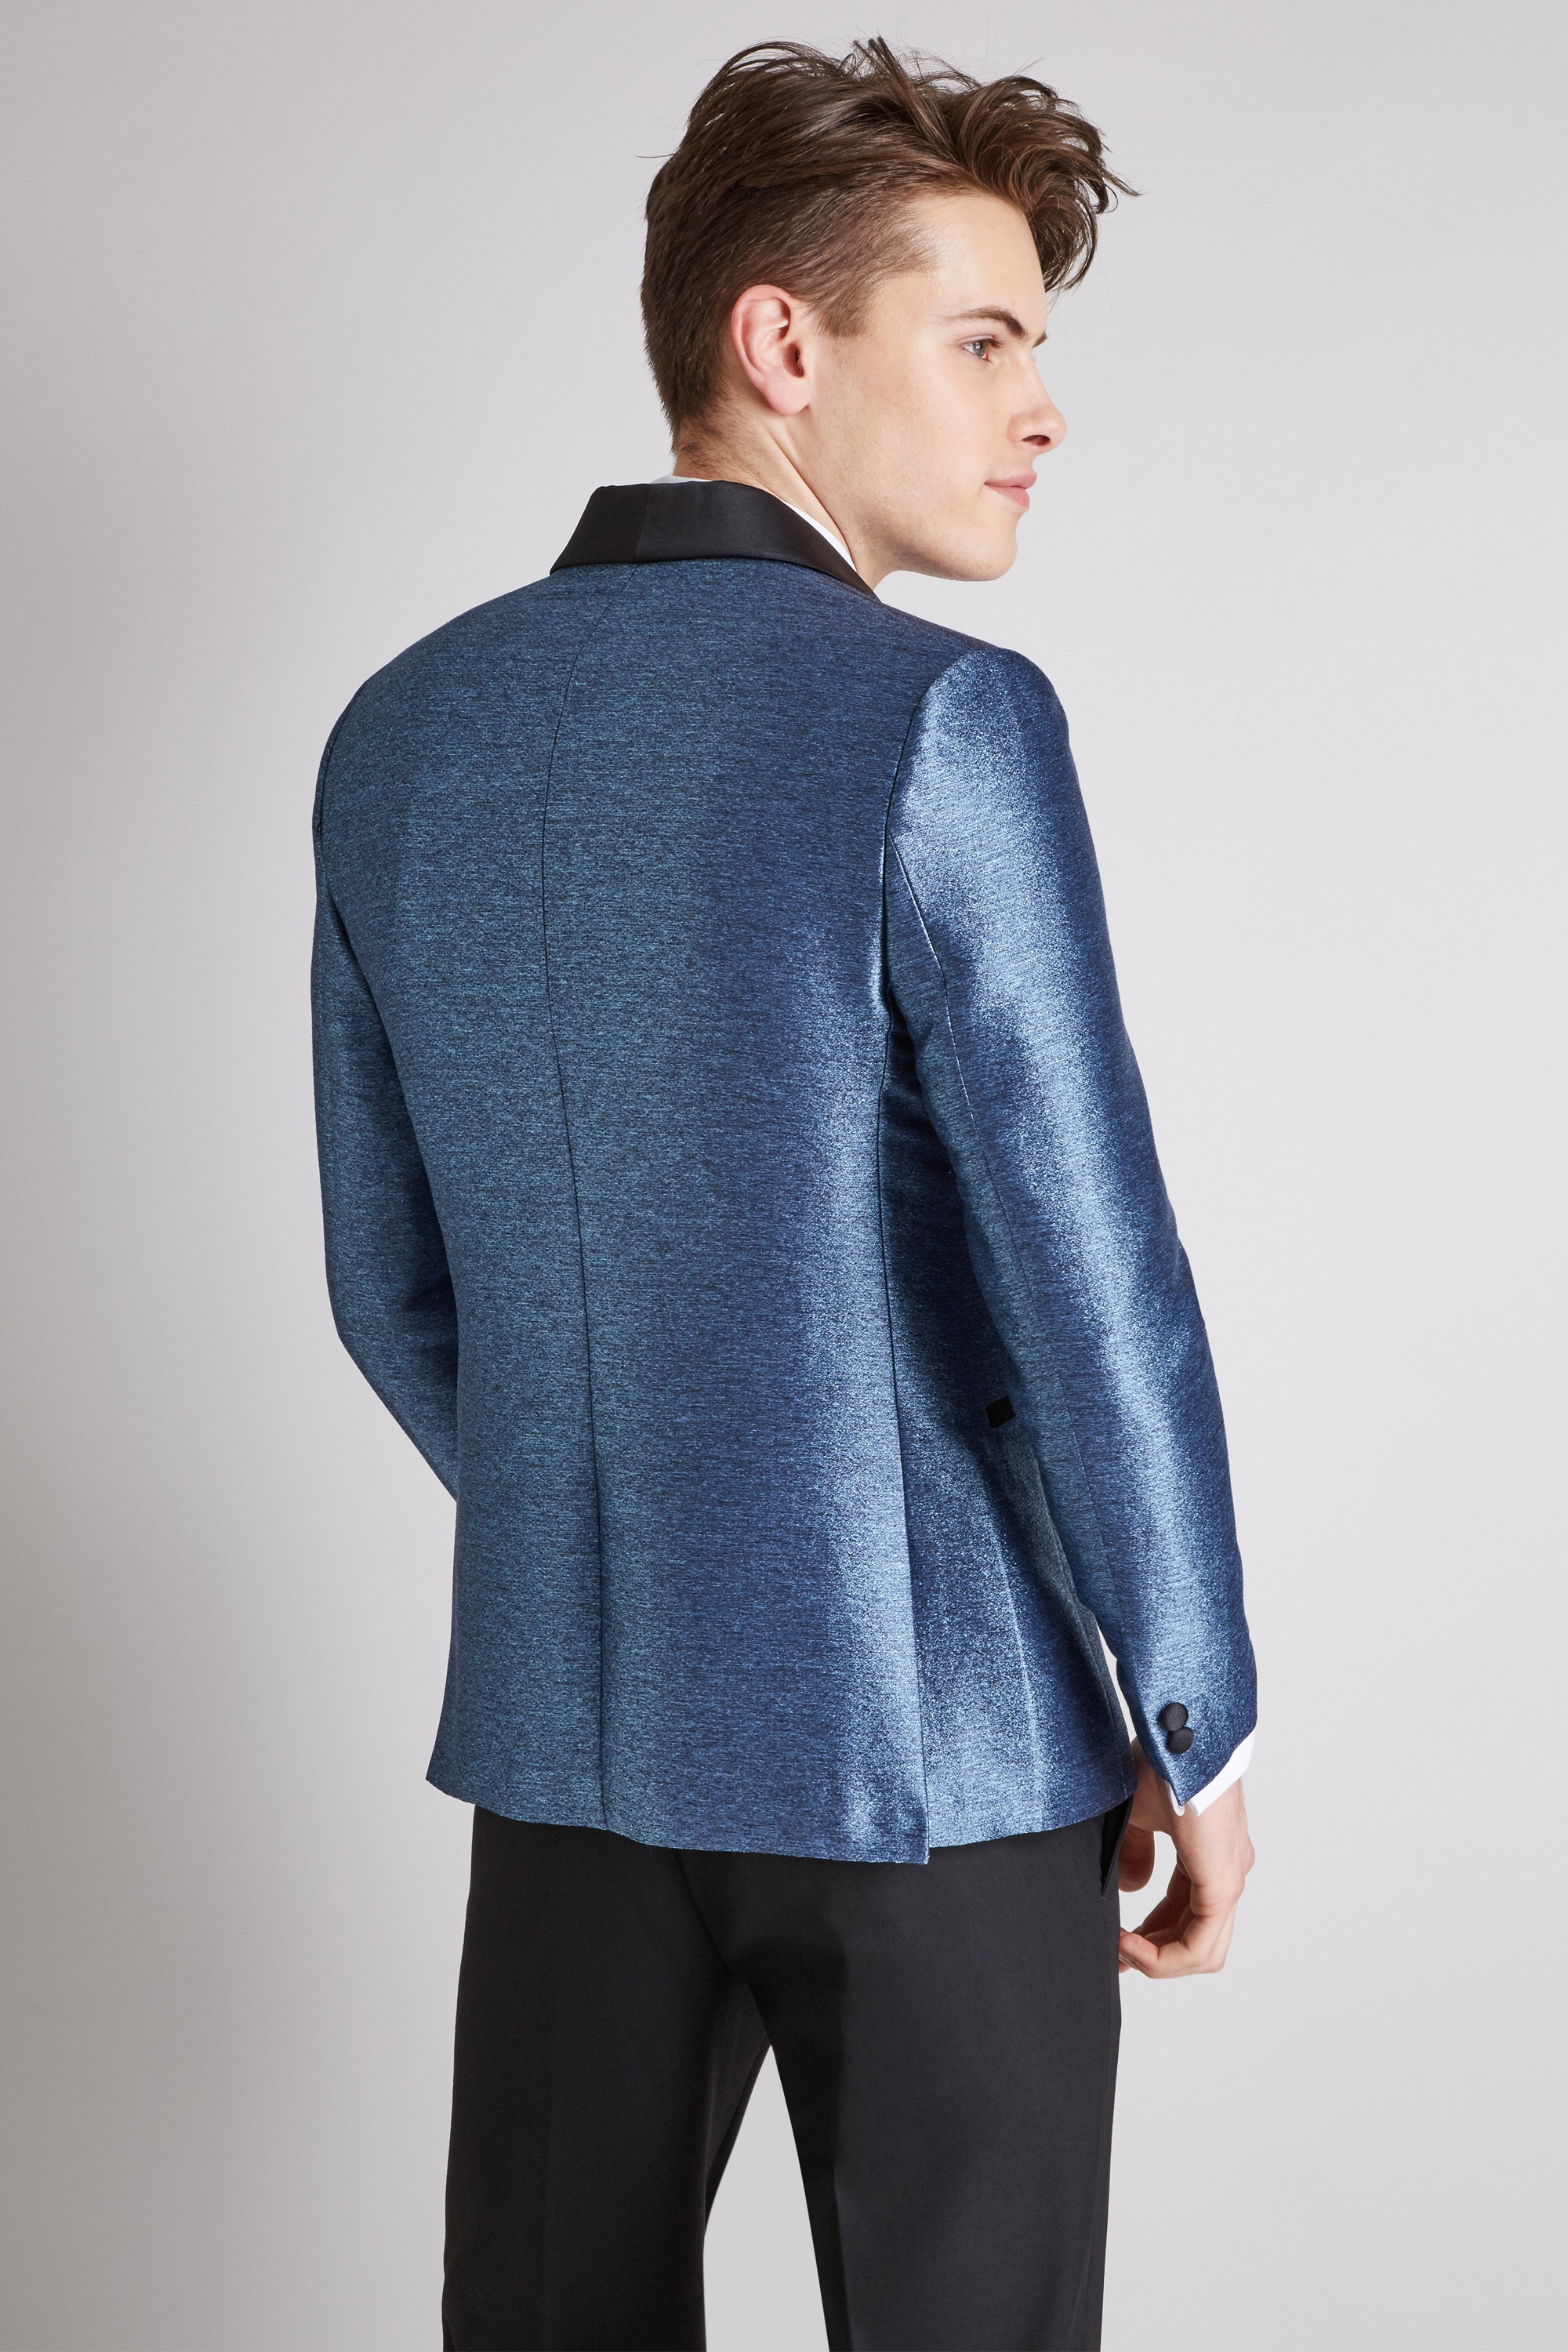 Moss London Slim Fit Light Blue Metallic Jacket